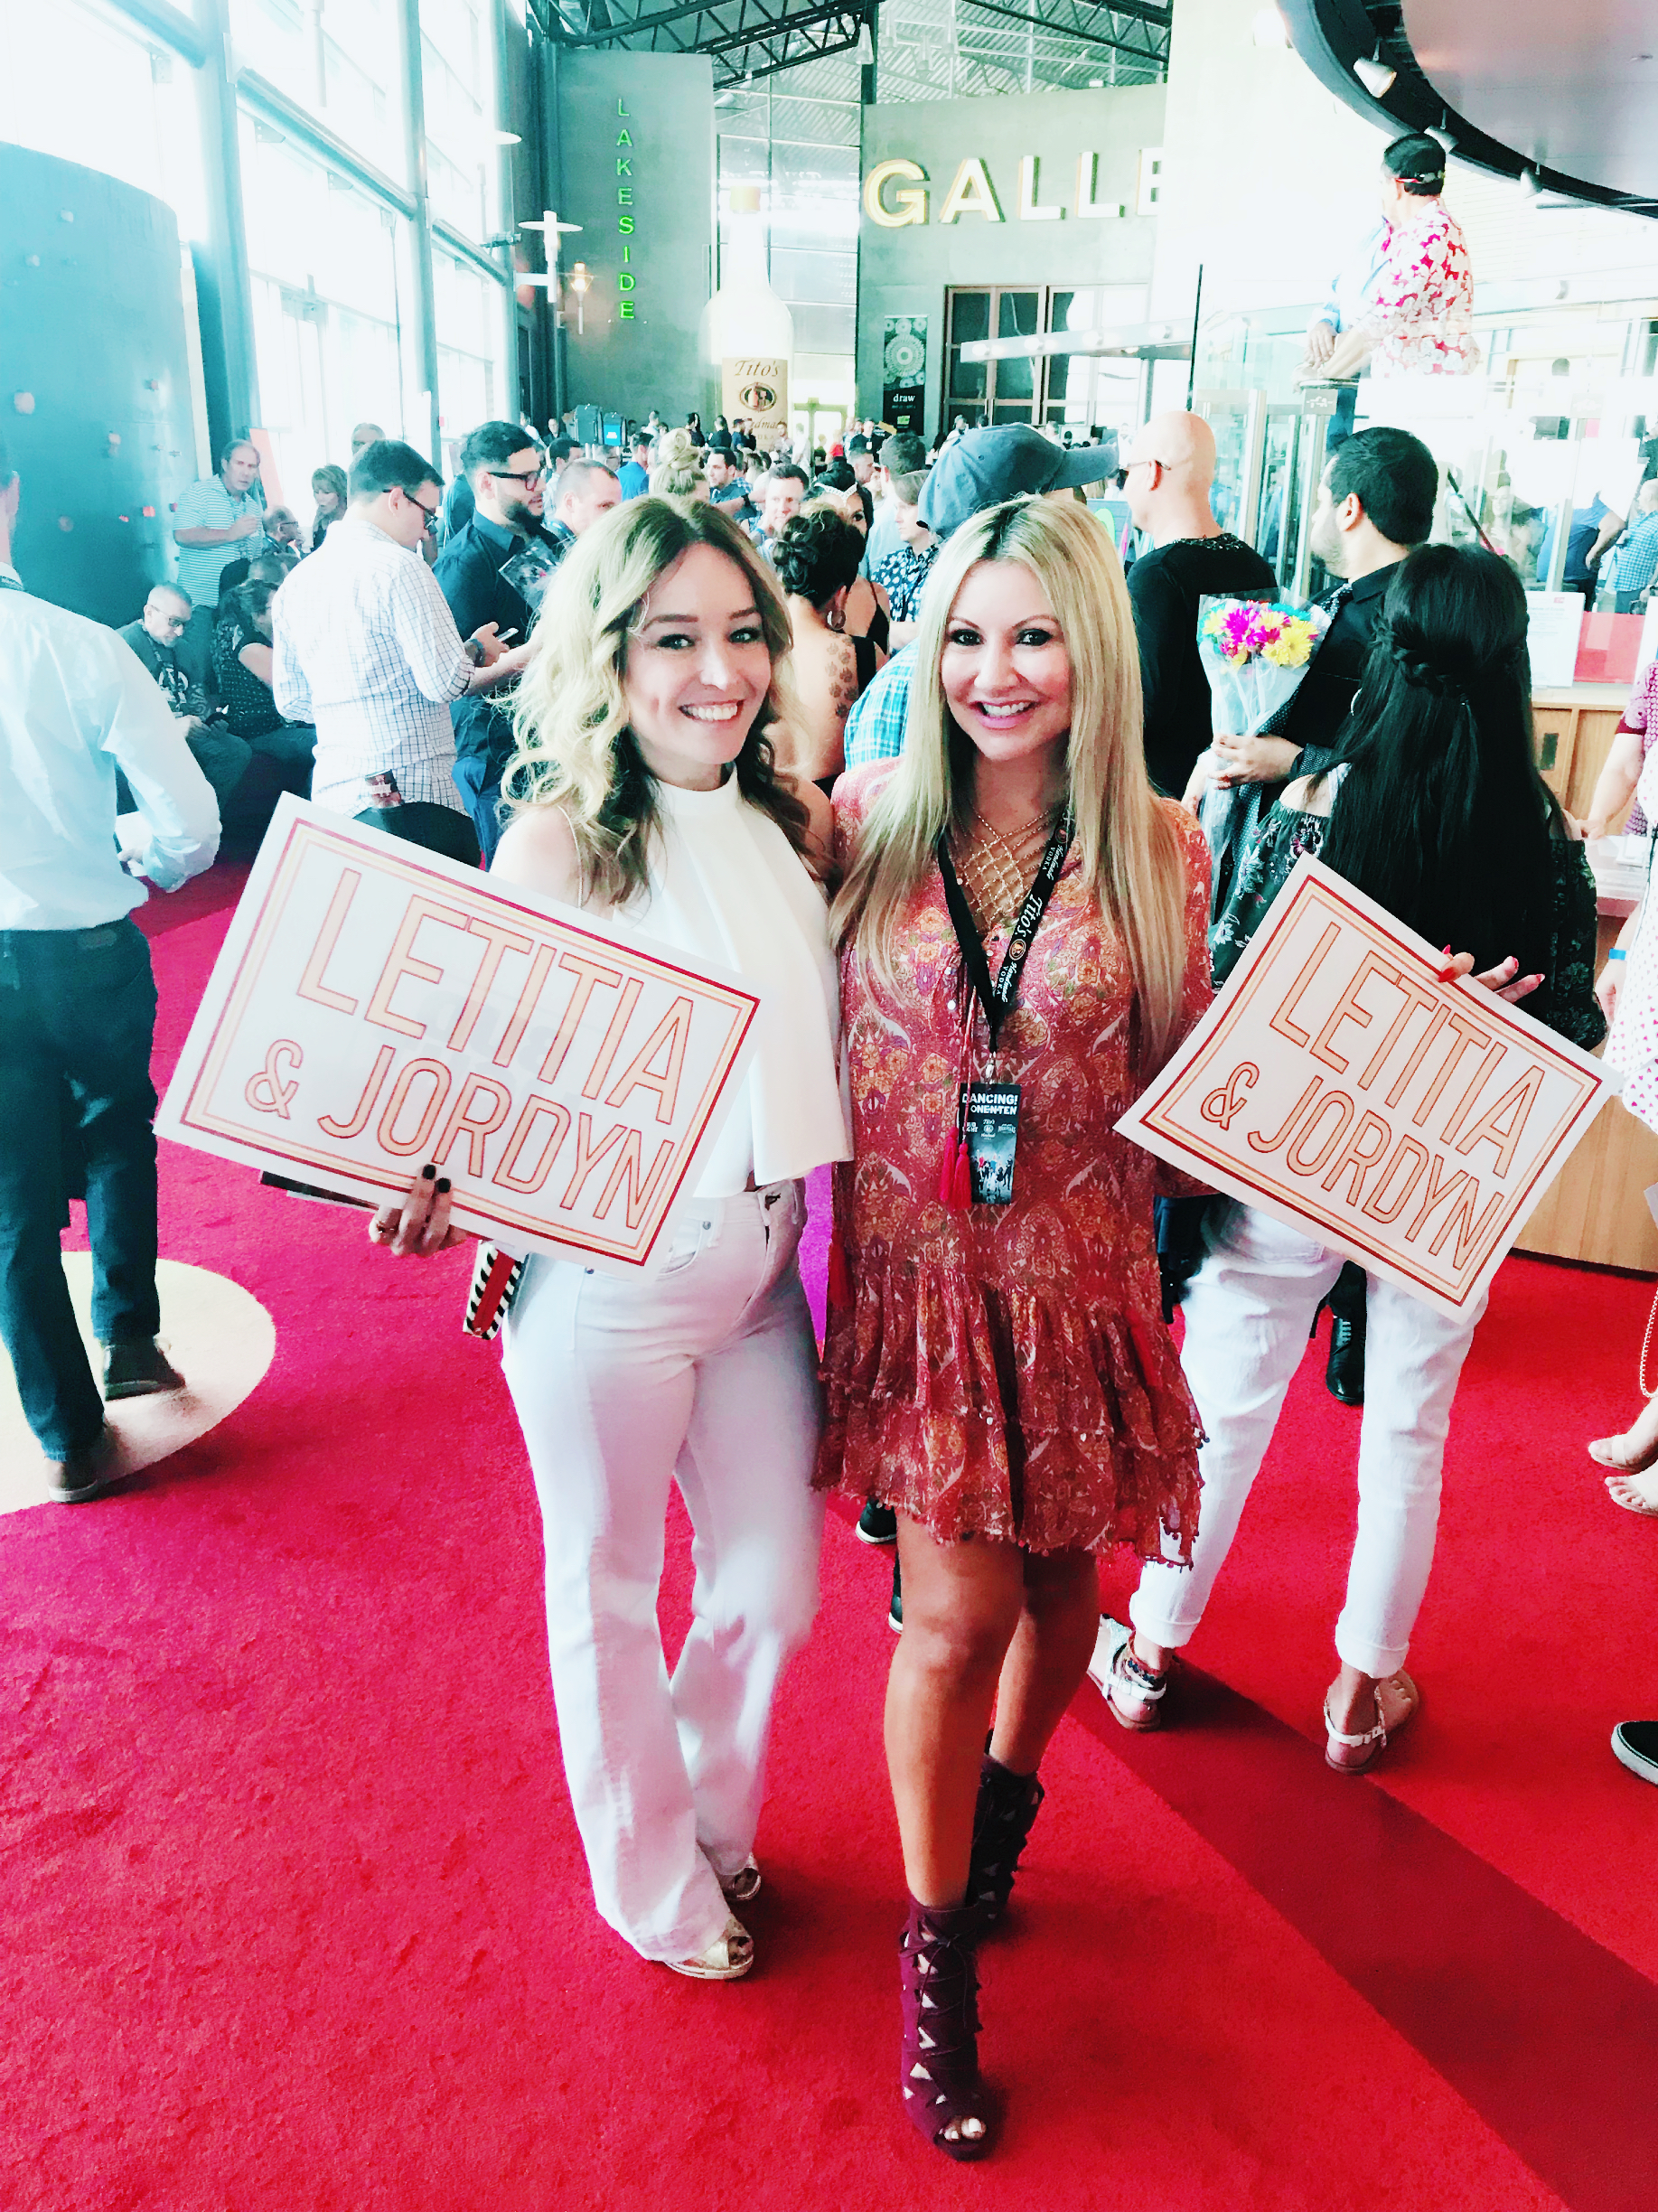 Carey Pena and Tyler Butler attend One N Ten Event